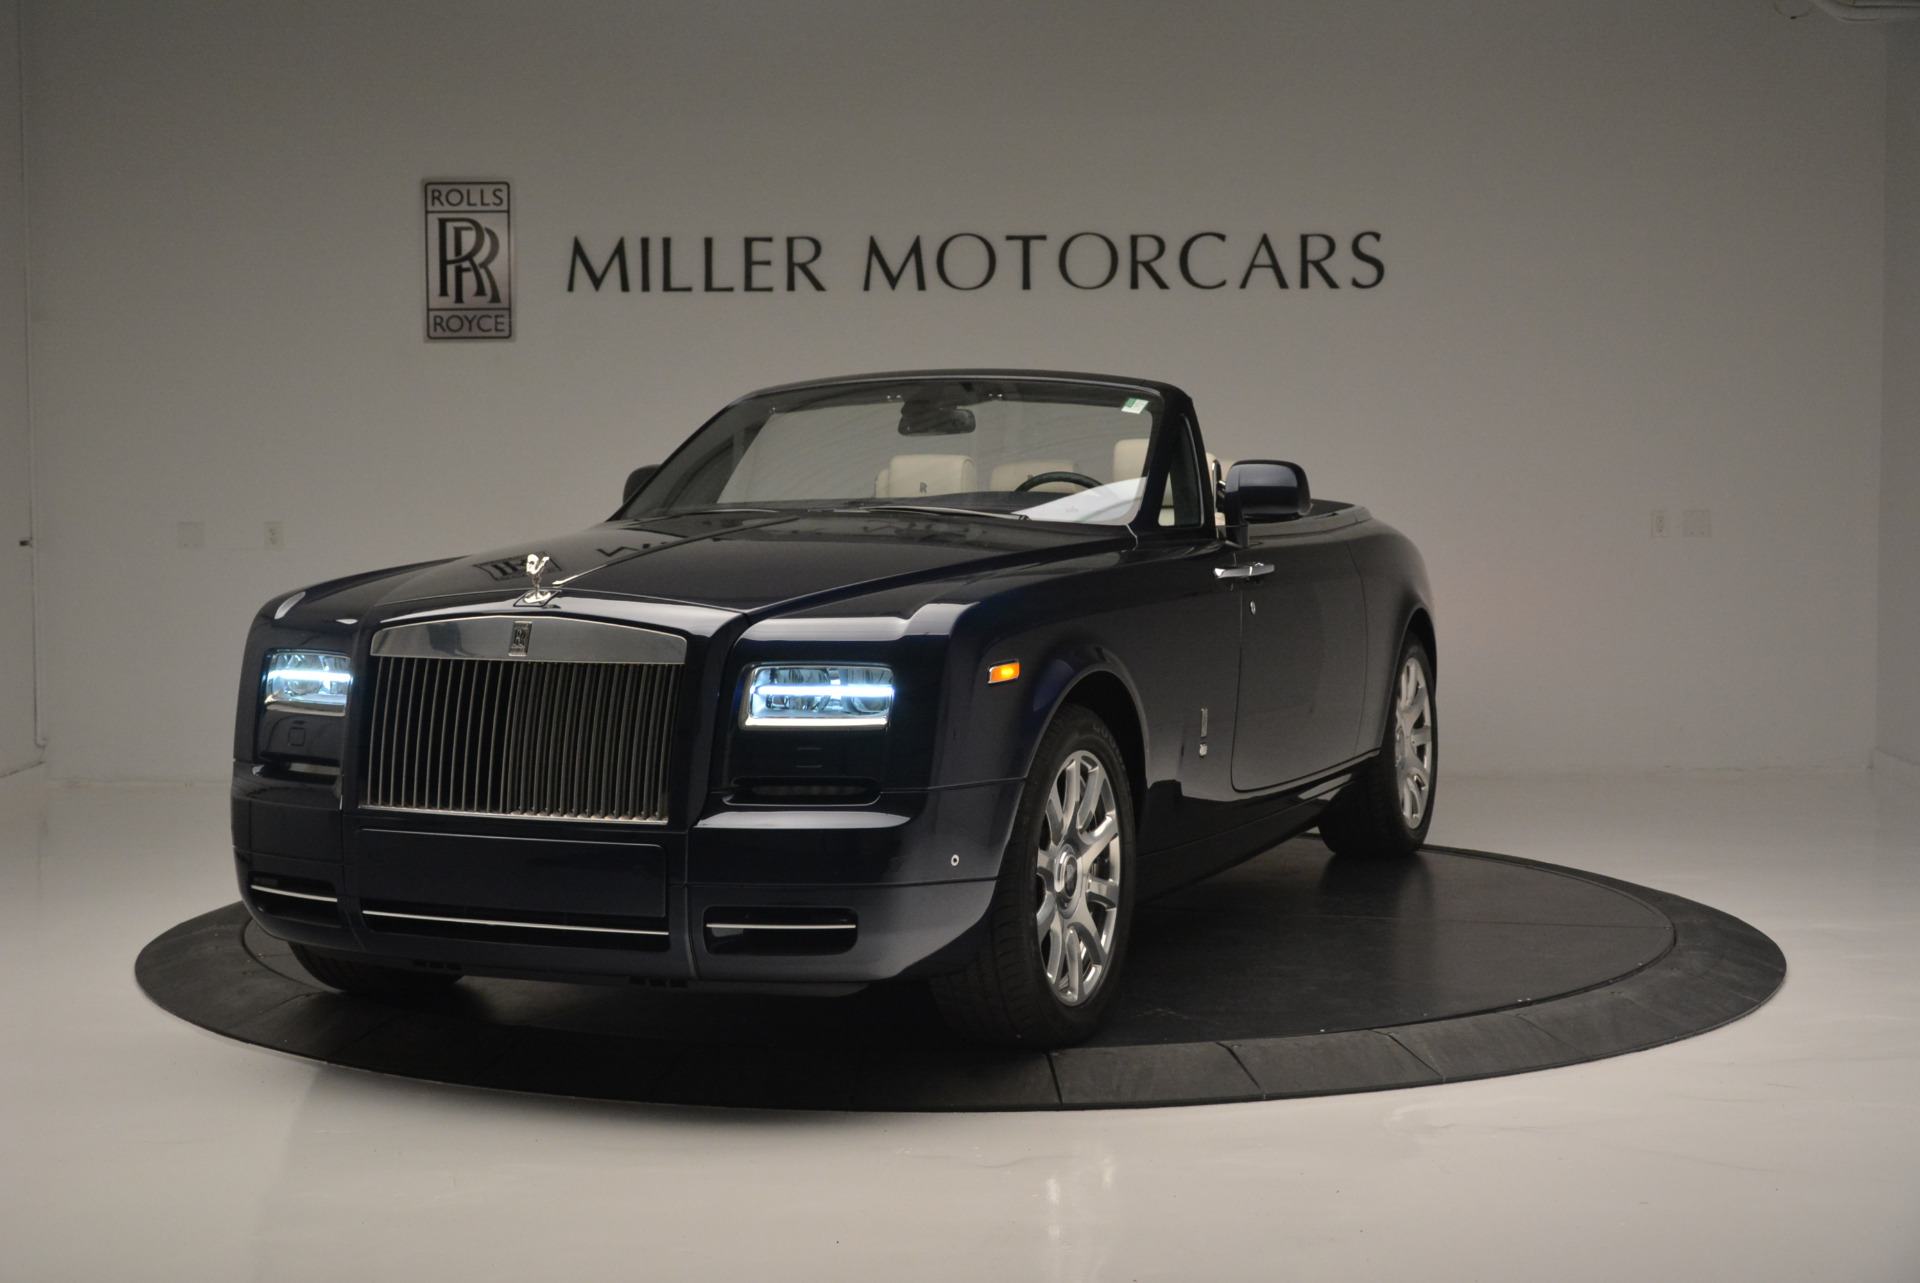 Used 2014 Rolls-Royce Phantom Drophead Coupe for sale Sold at Aston Martin of Greenwich in Greenwich CT 06830 1